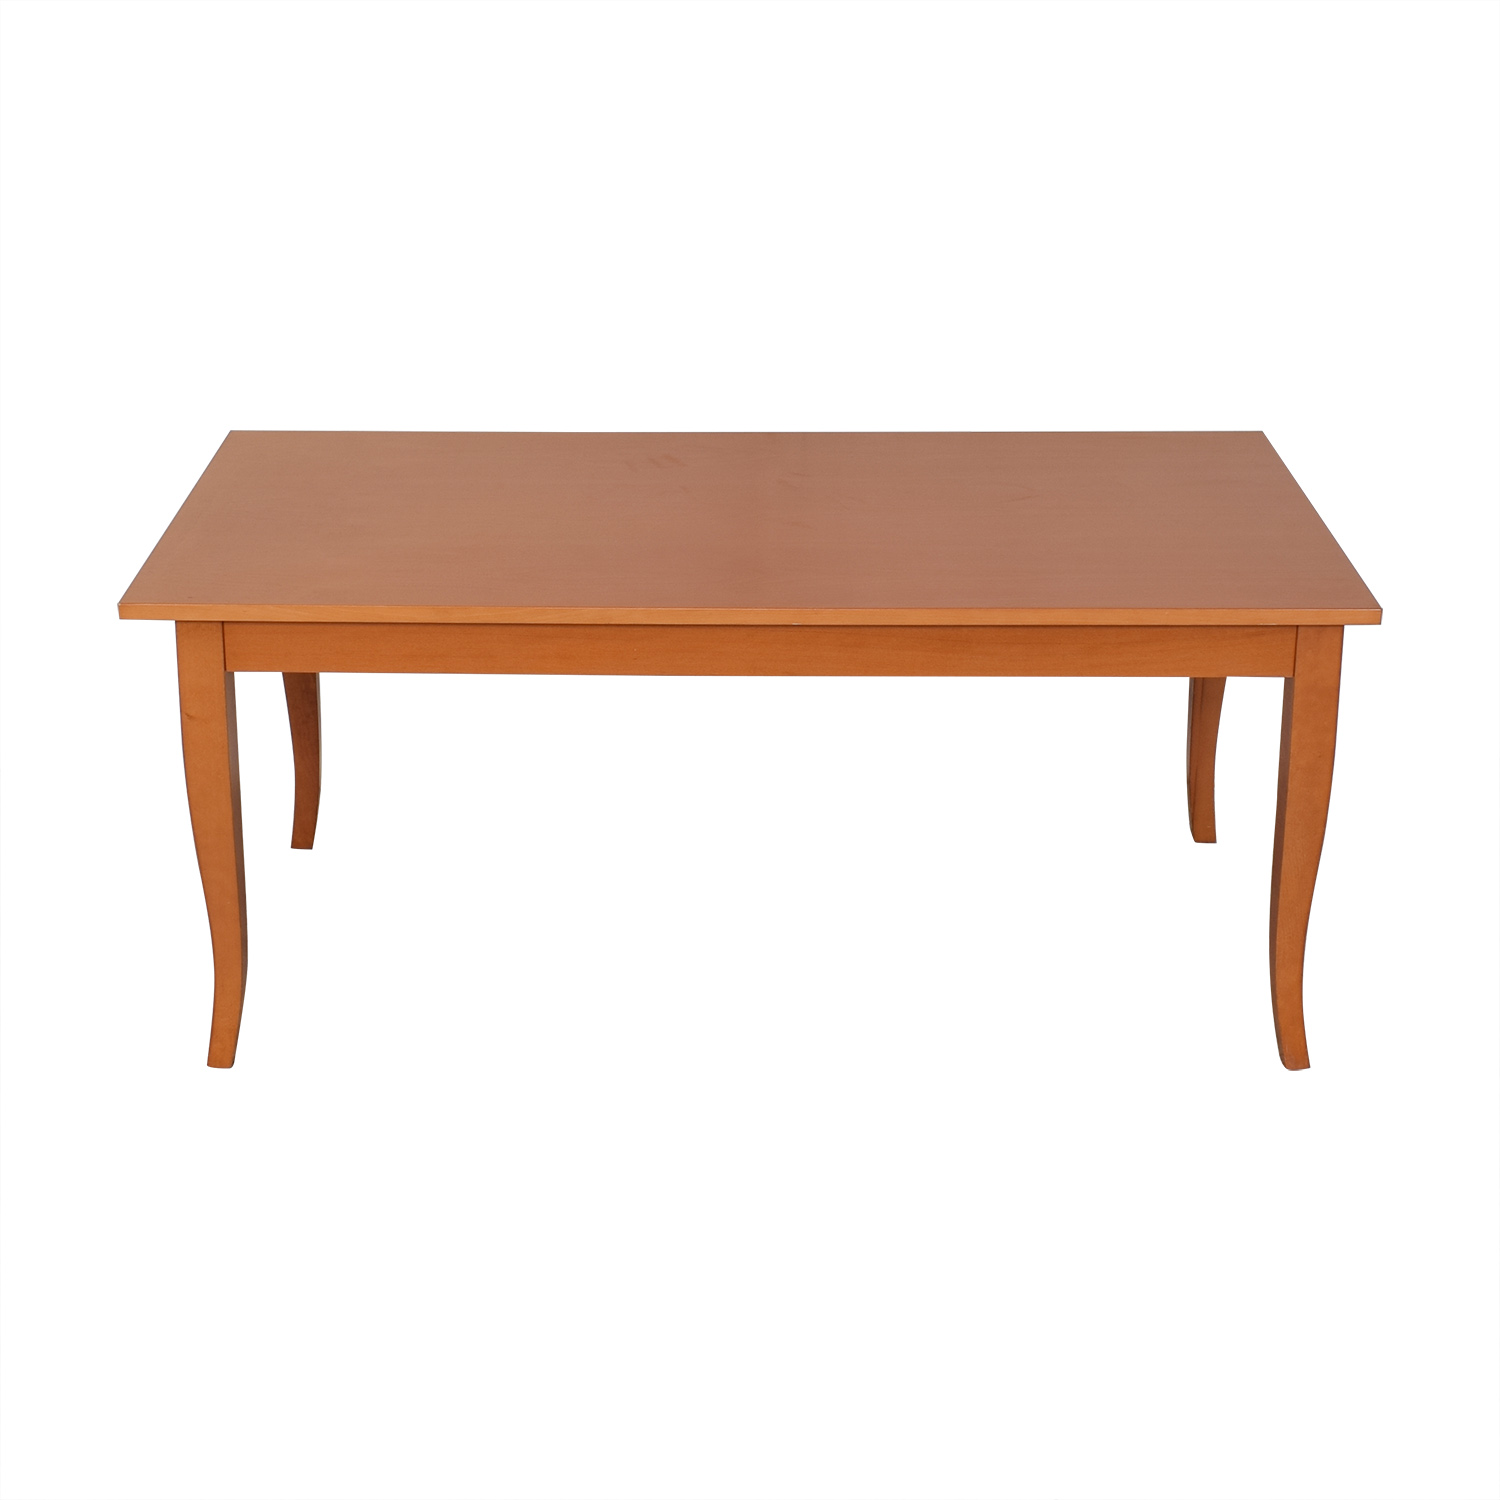 buy Storehouse Storehouse Extension Dining Table online